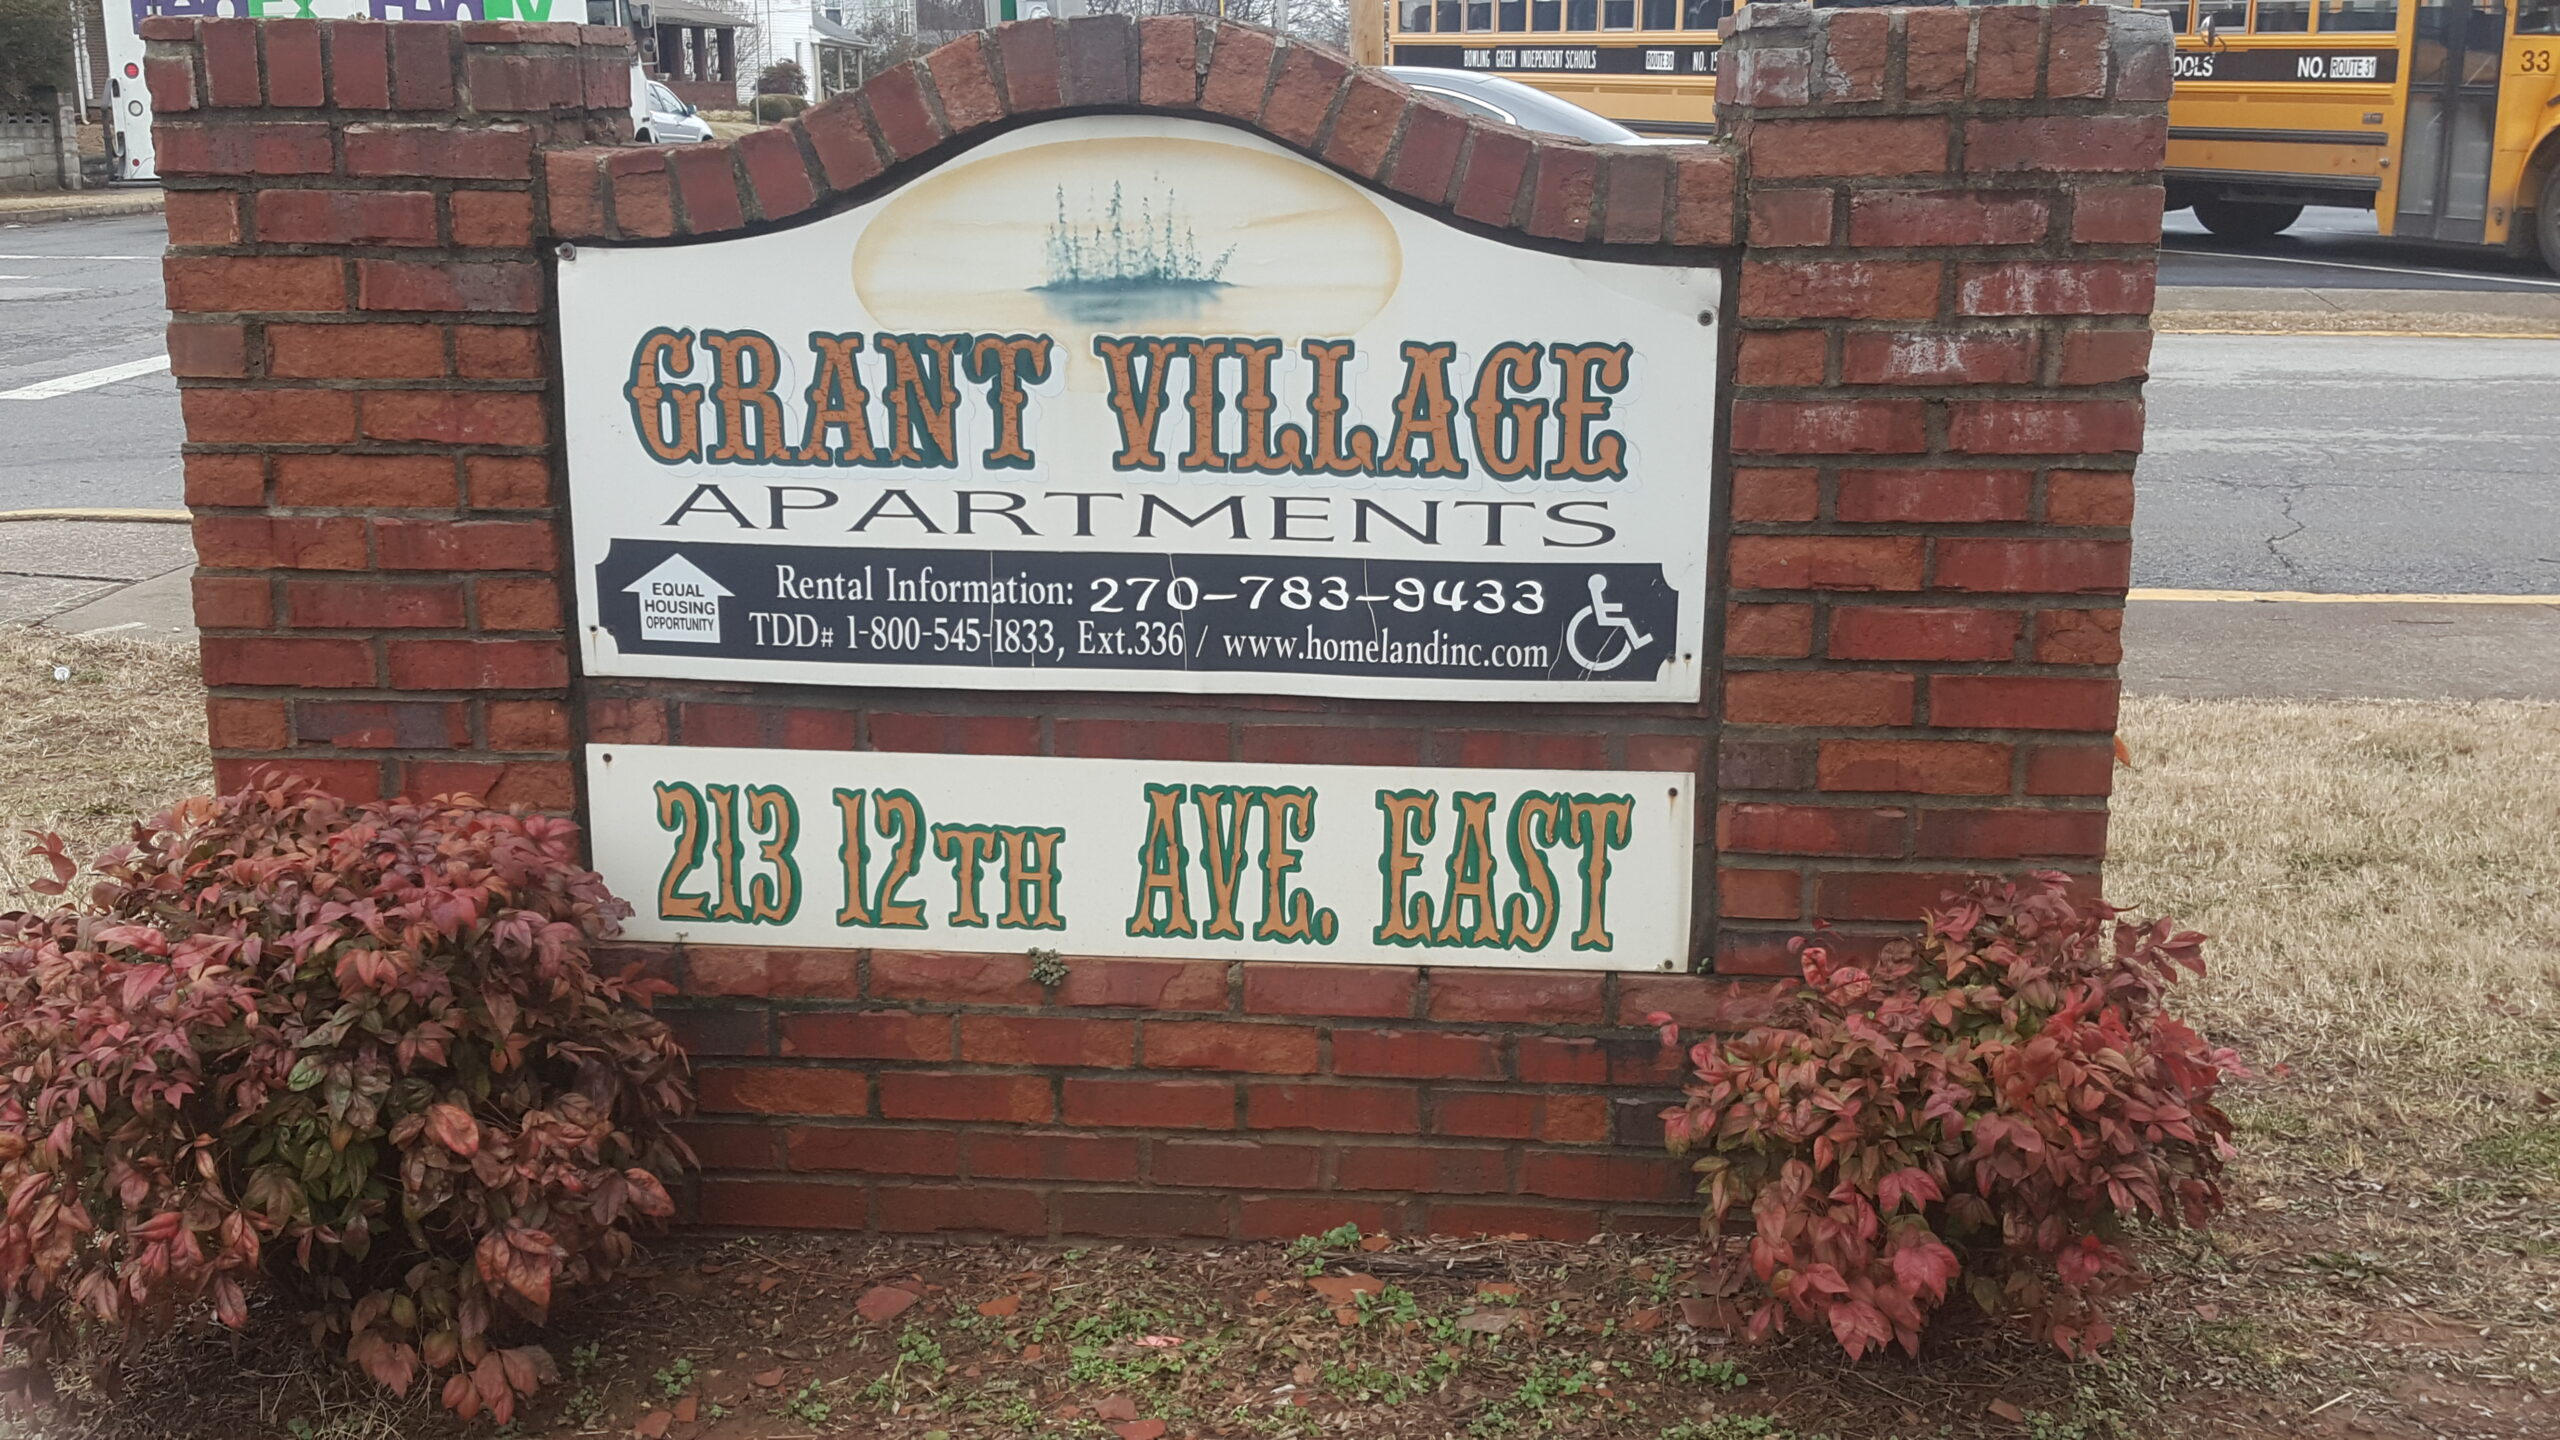 Grant Village Apartments